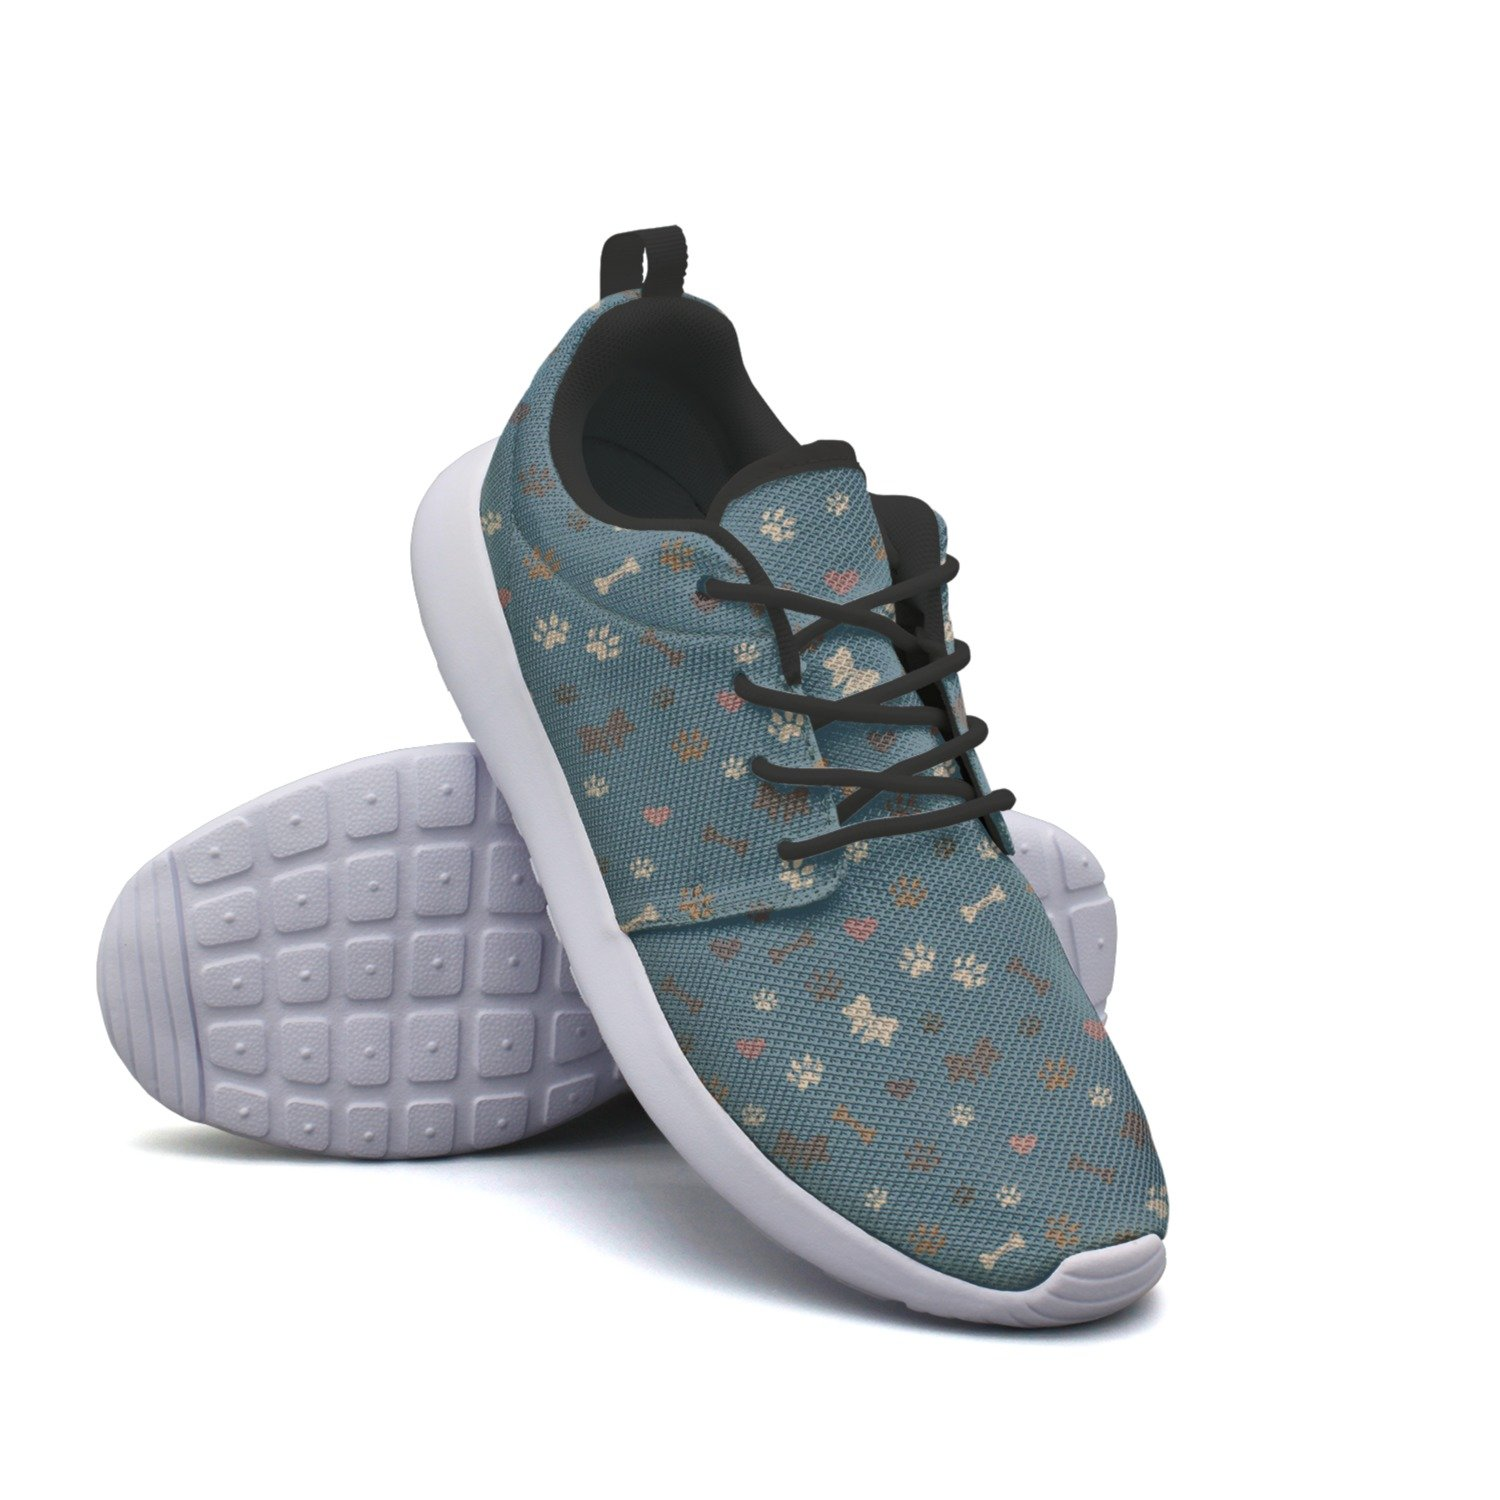 FUFGT Paw Party Women Printing Design Running Shoes Hunting Gift